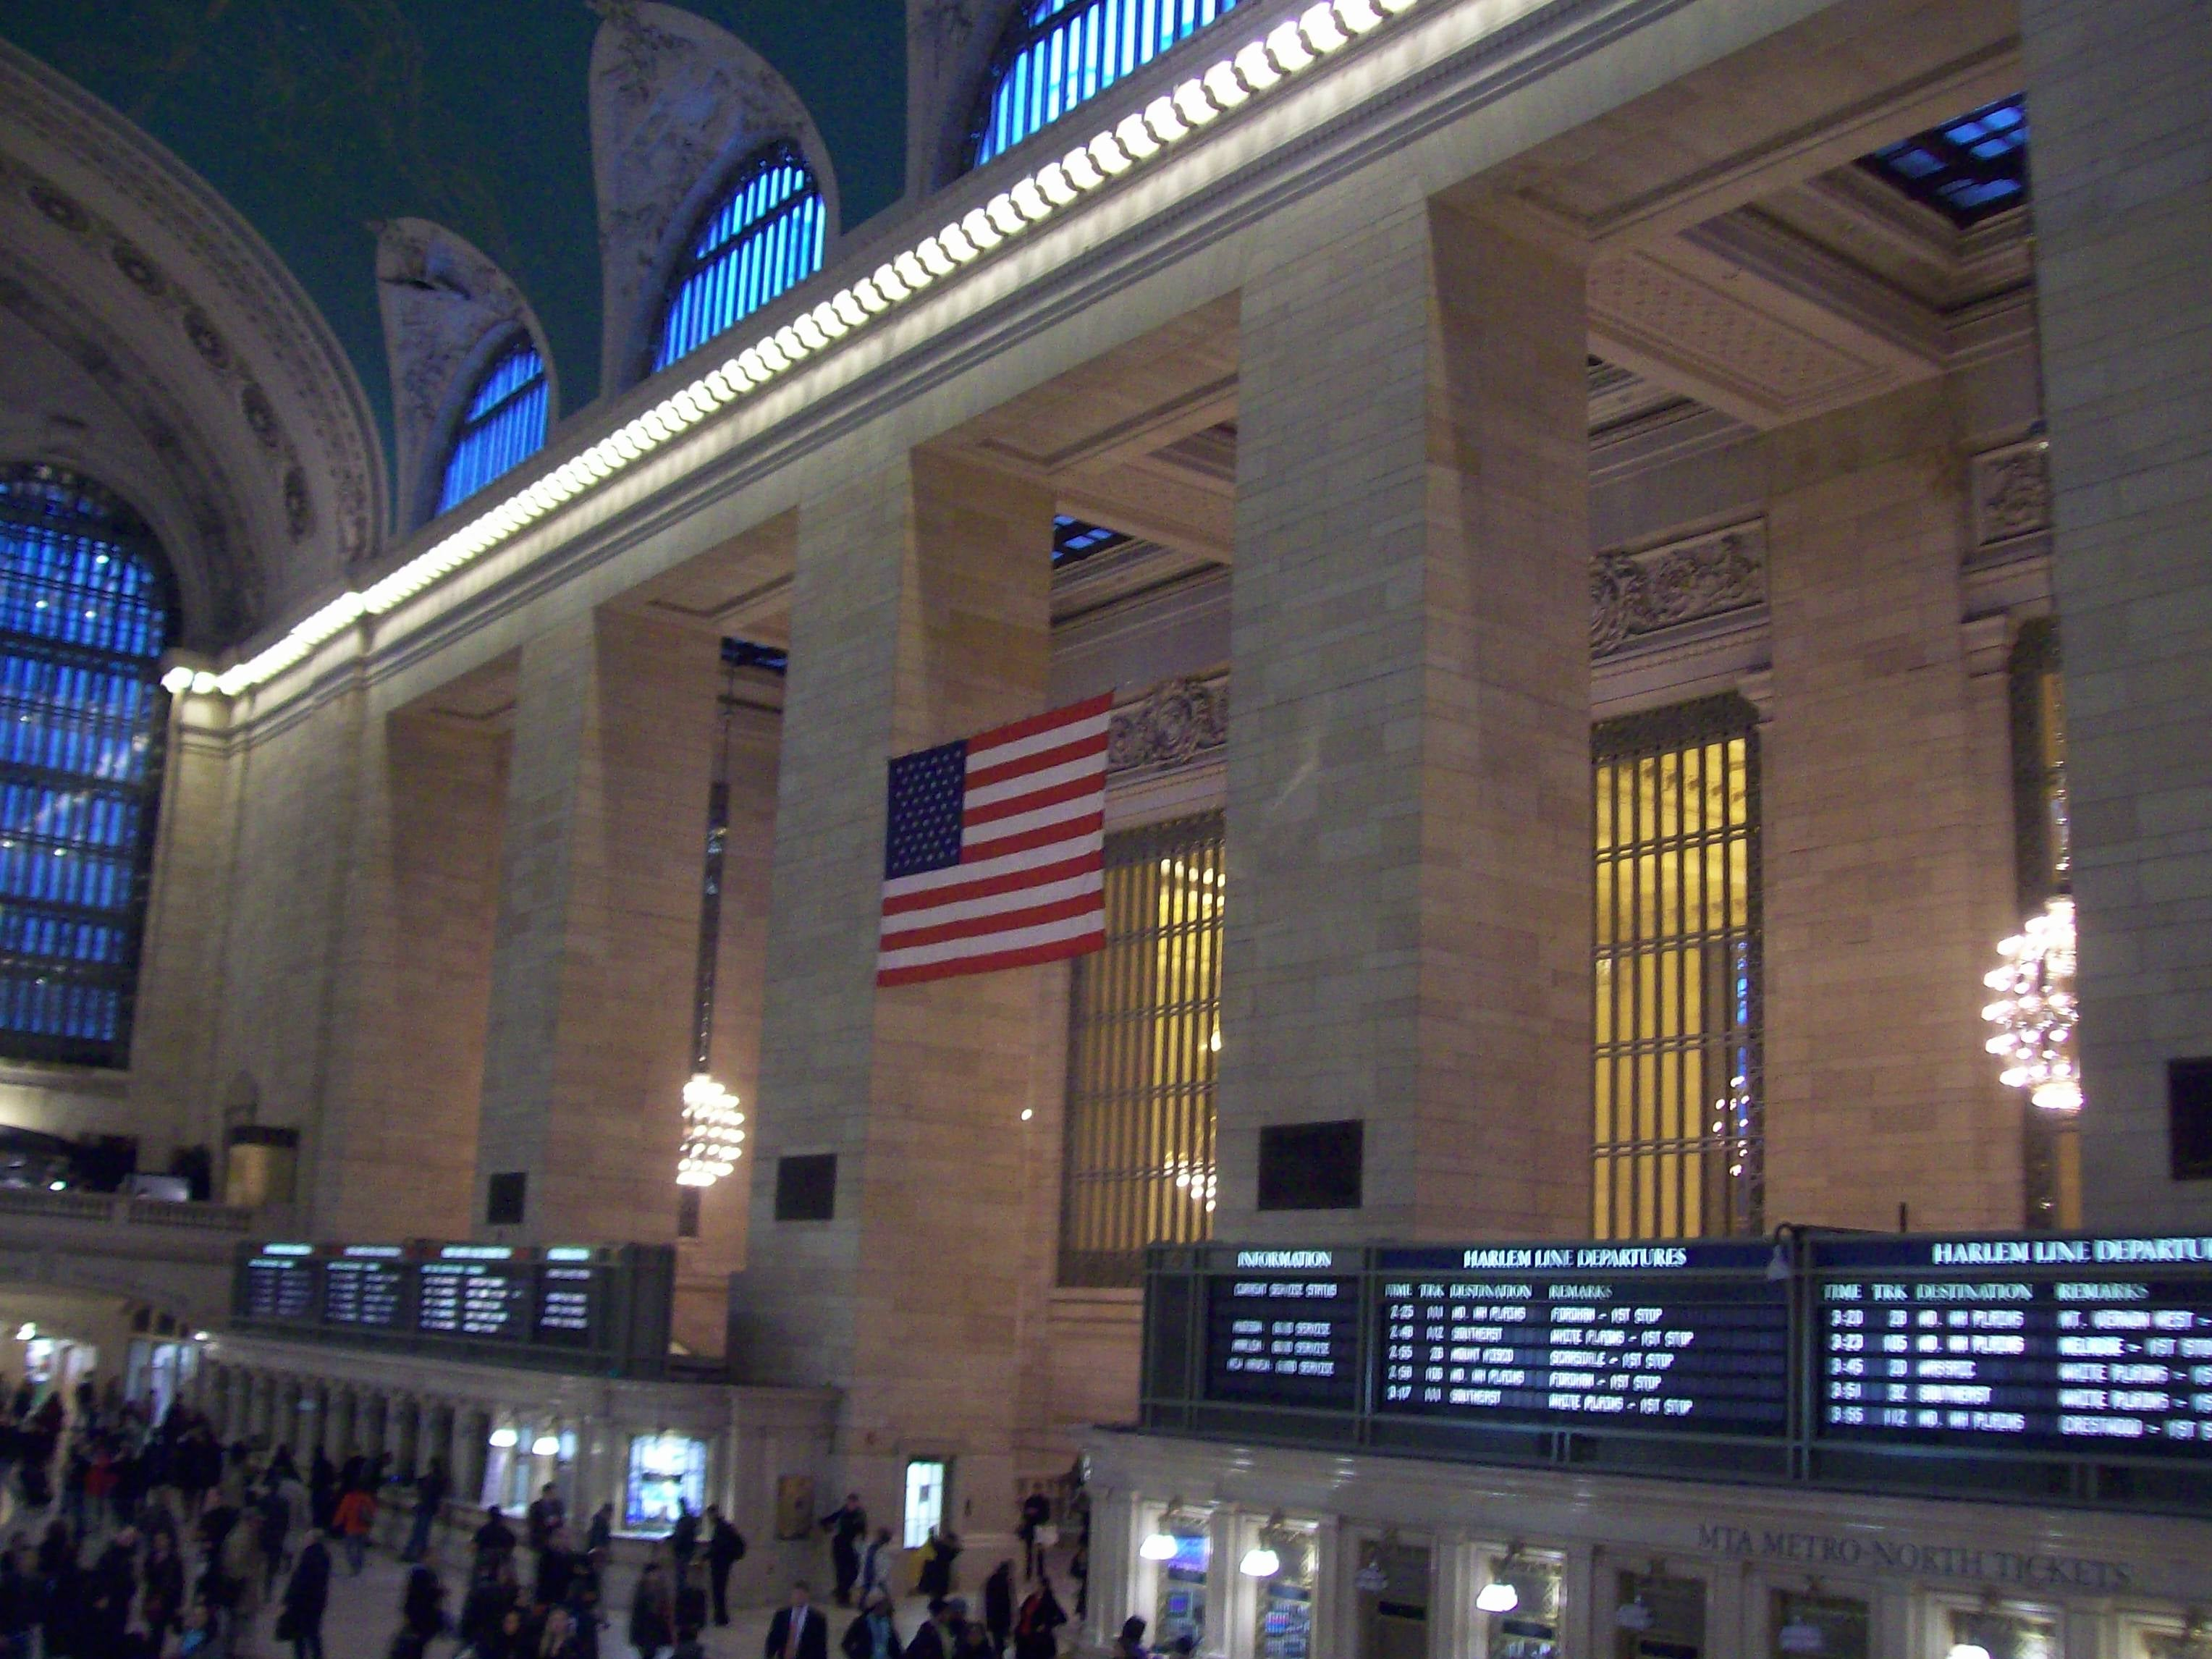 Centro de la ciudad en Grand Central Station